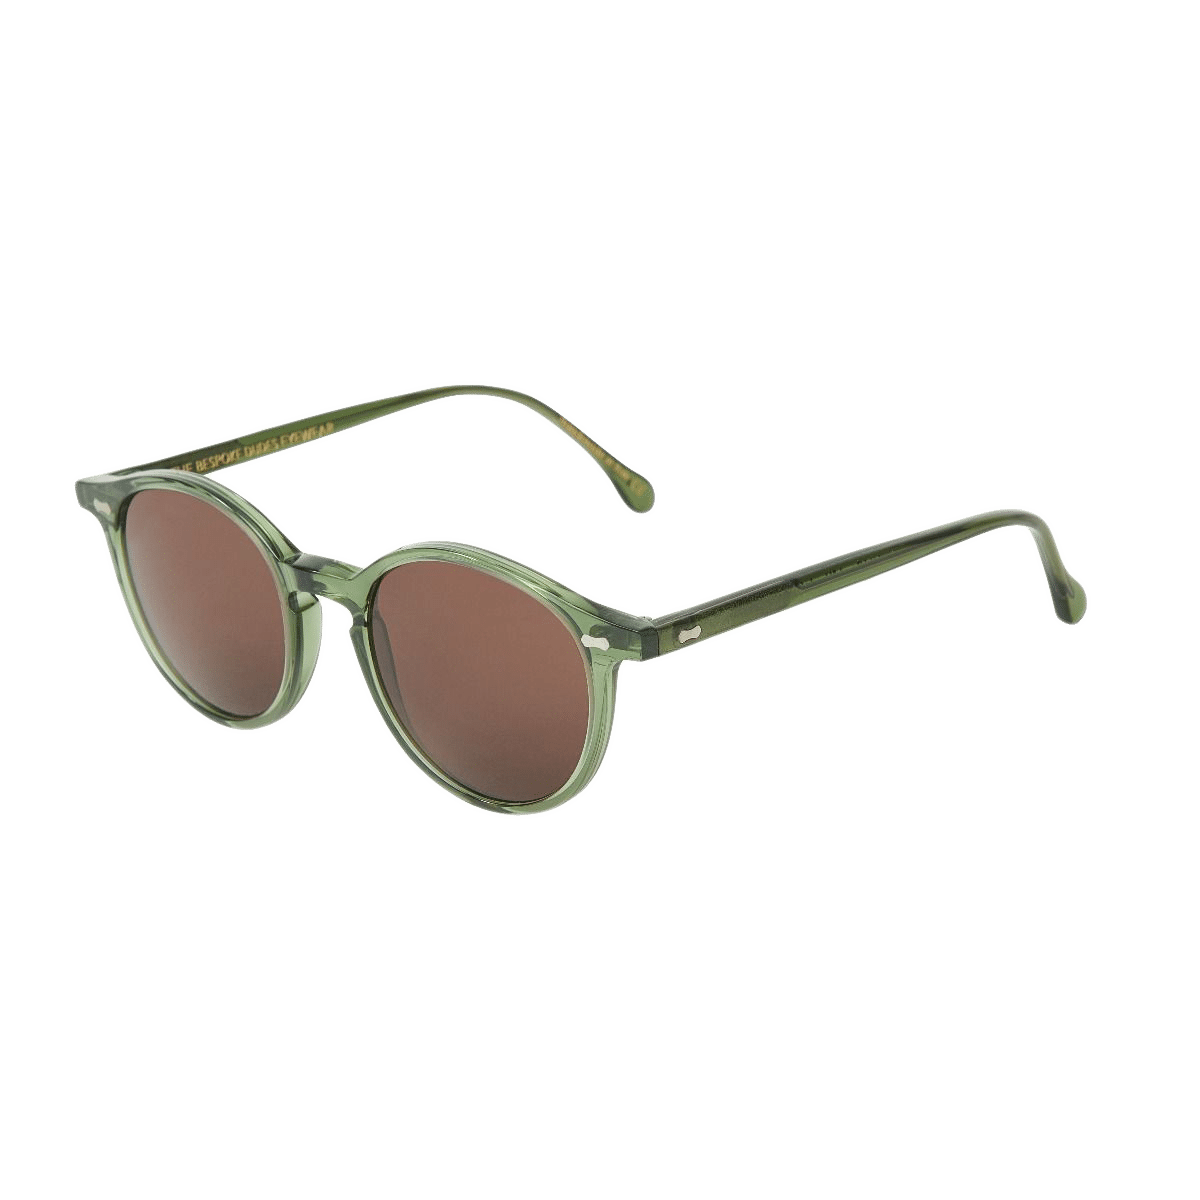 The Bespoke Dudes Eywear Cran Green With Tobacco Lenses Feature